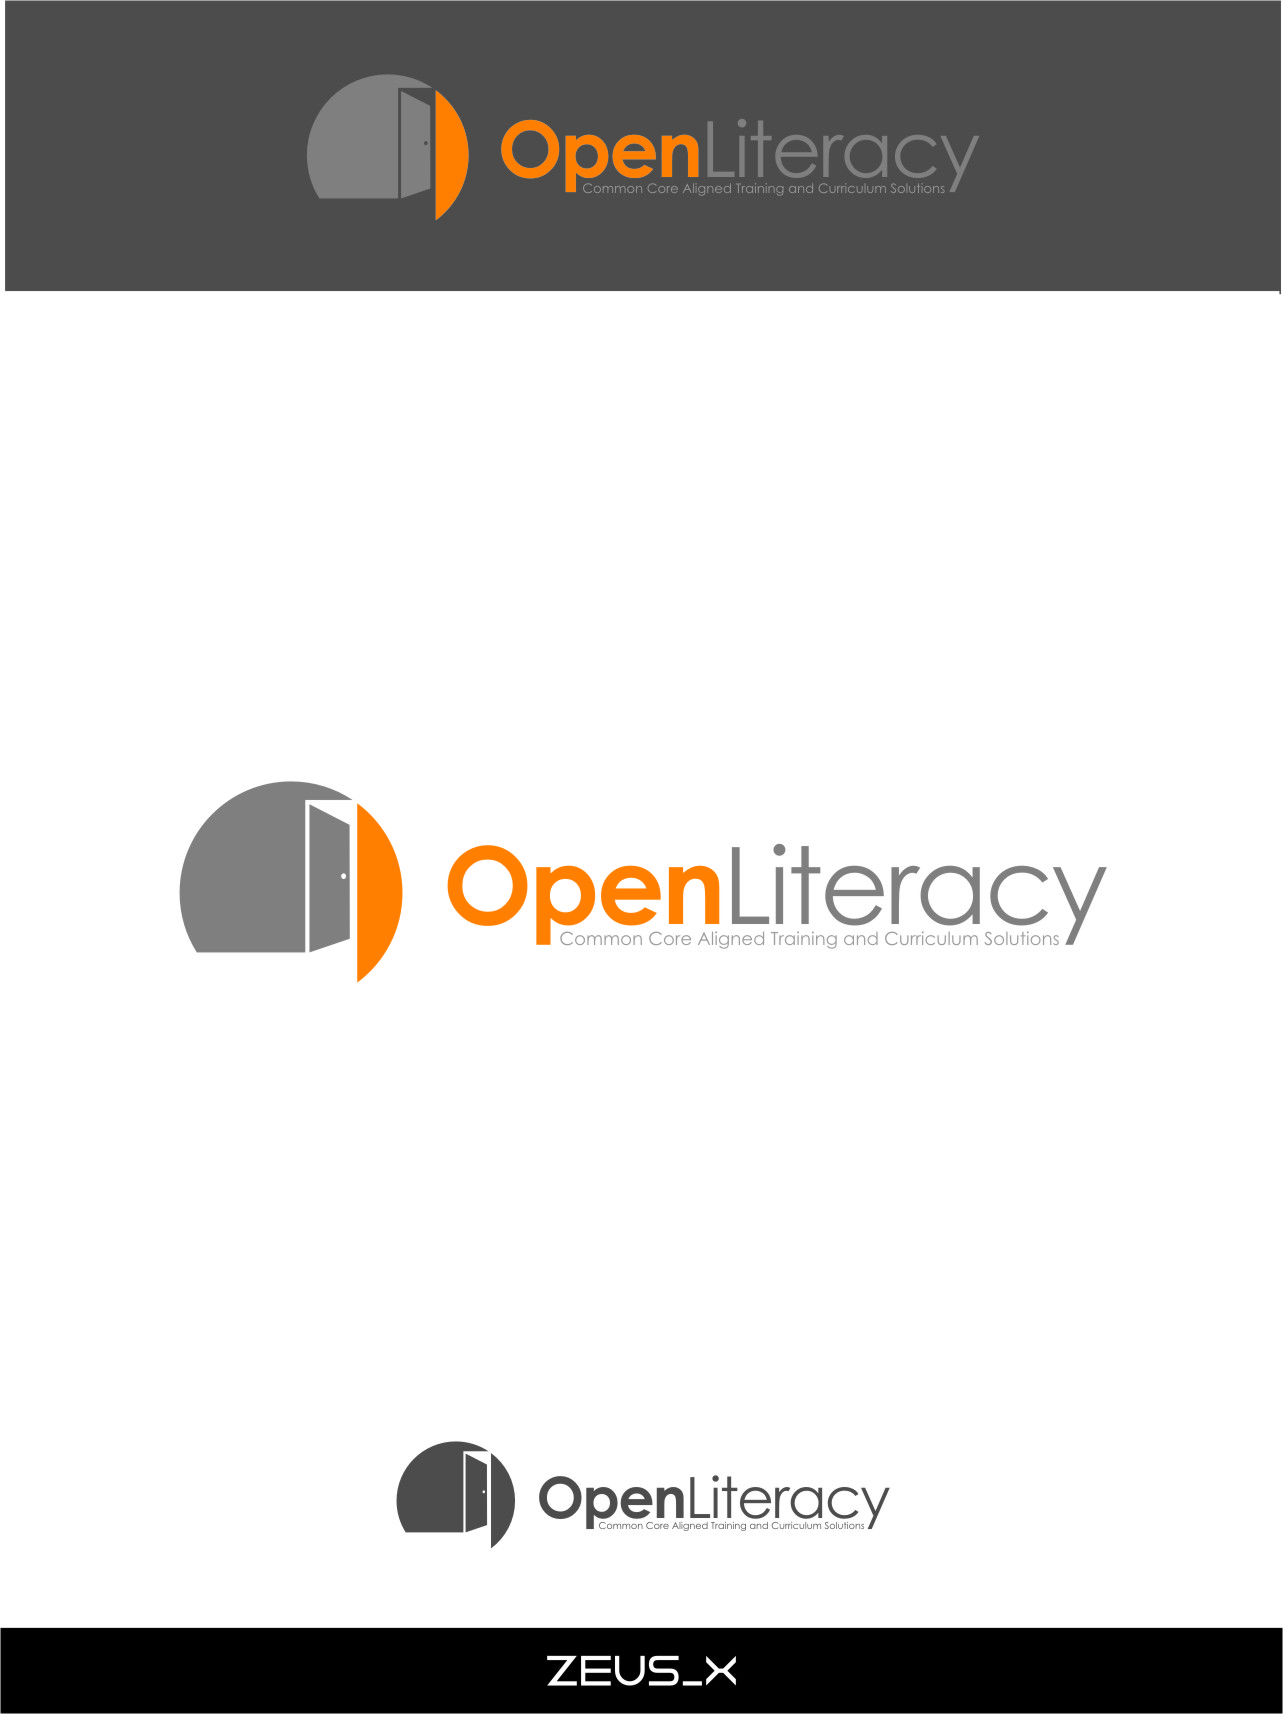 Logo Design by Ngepet_art - Entry No. 148 in the Logo Design Contest Inspiring Logo Design for OpenLiteracy.